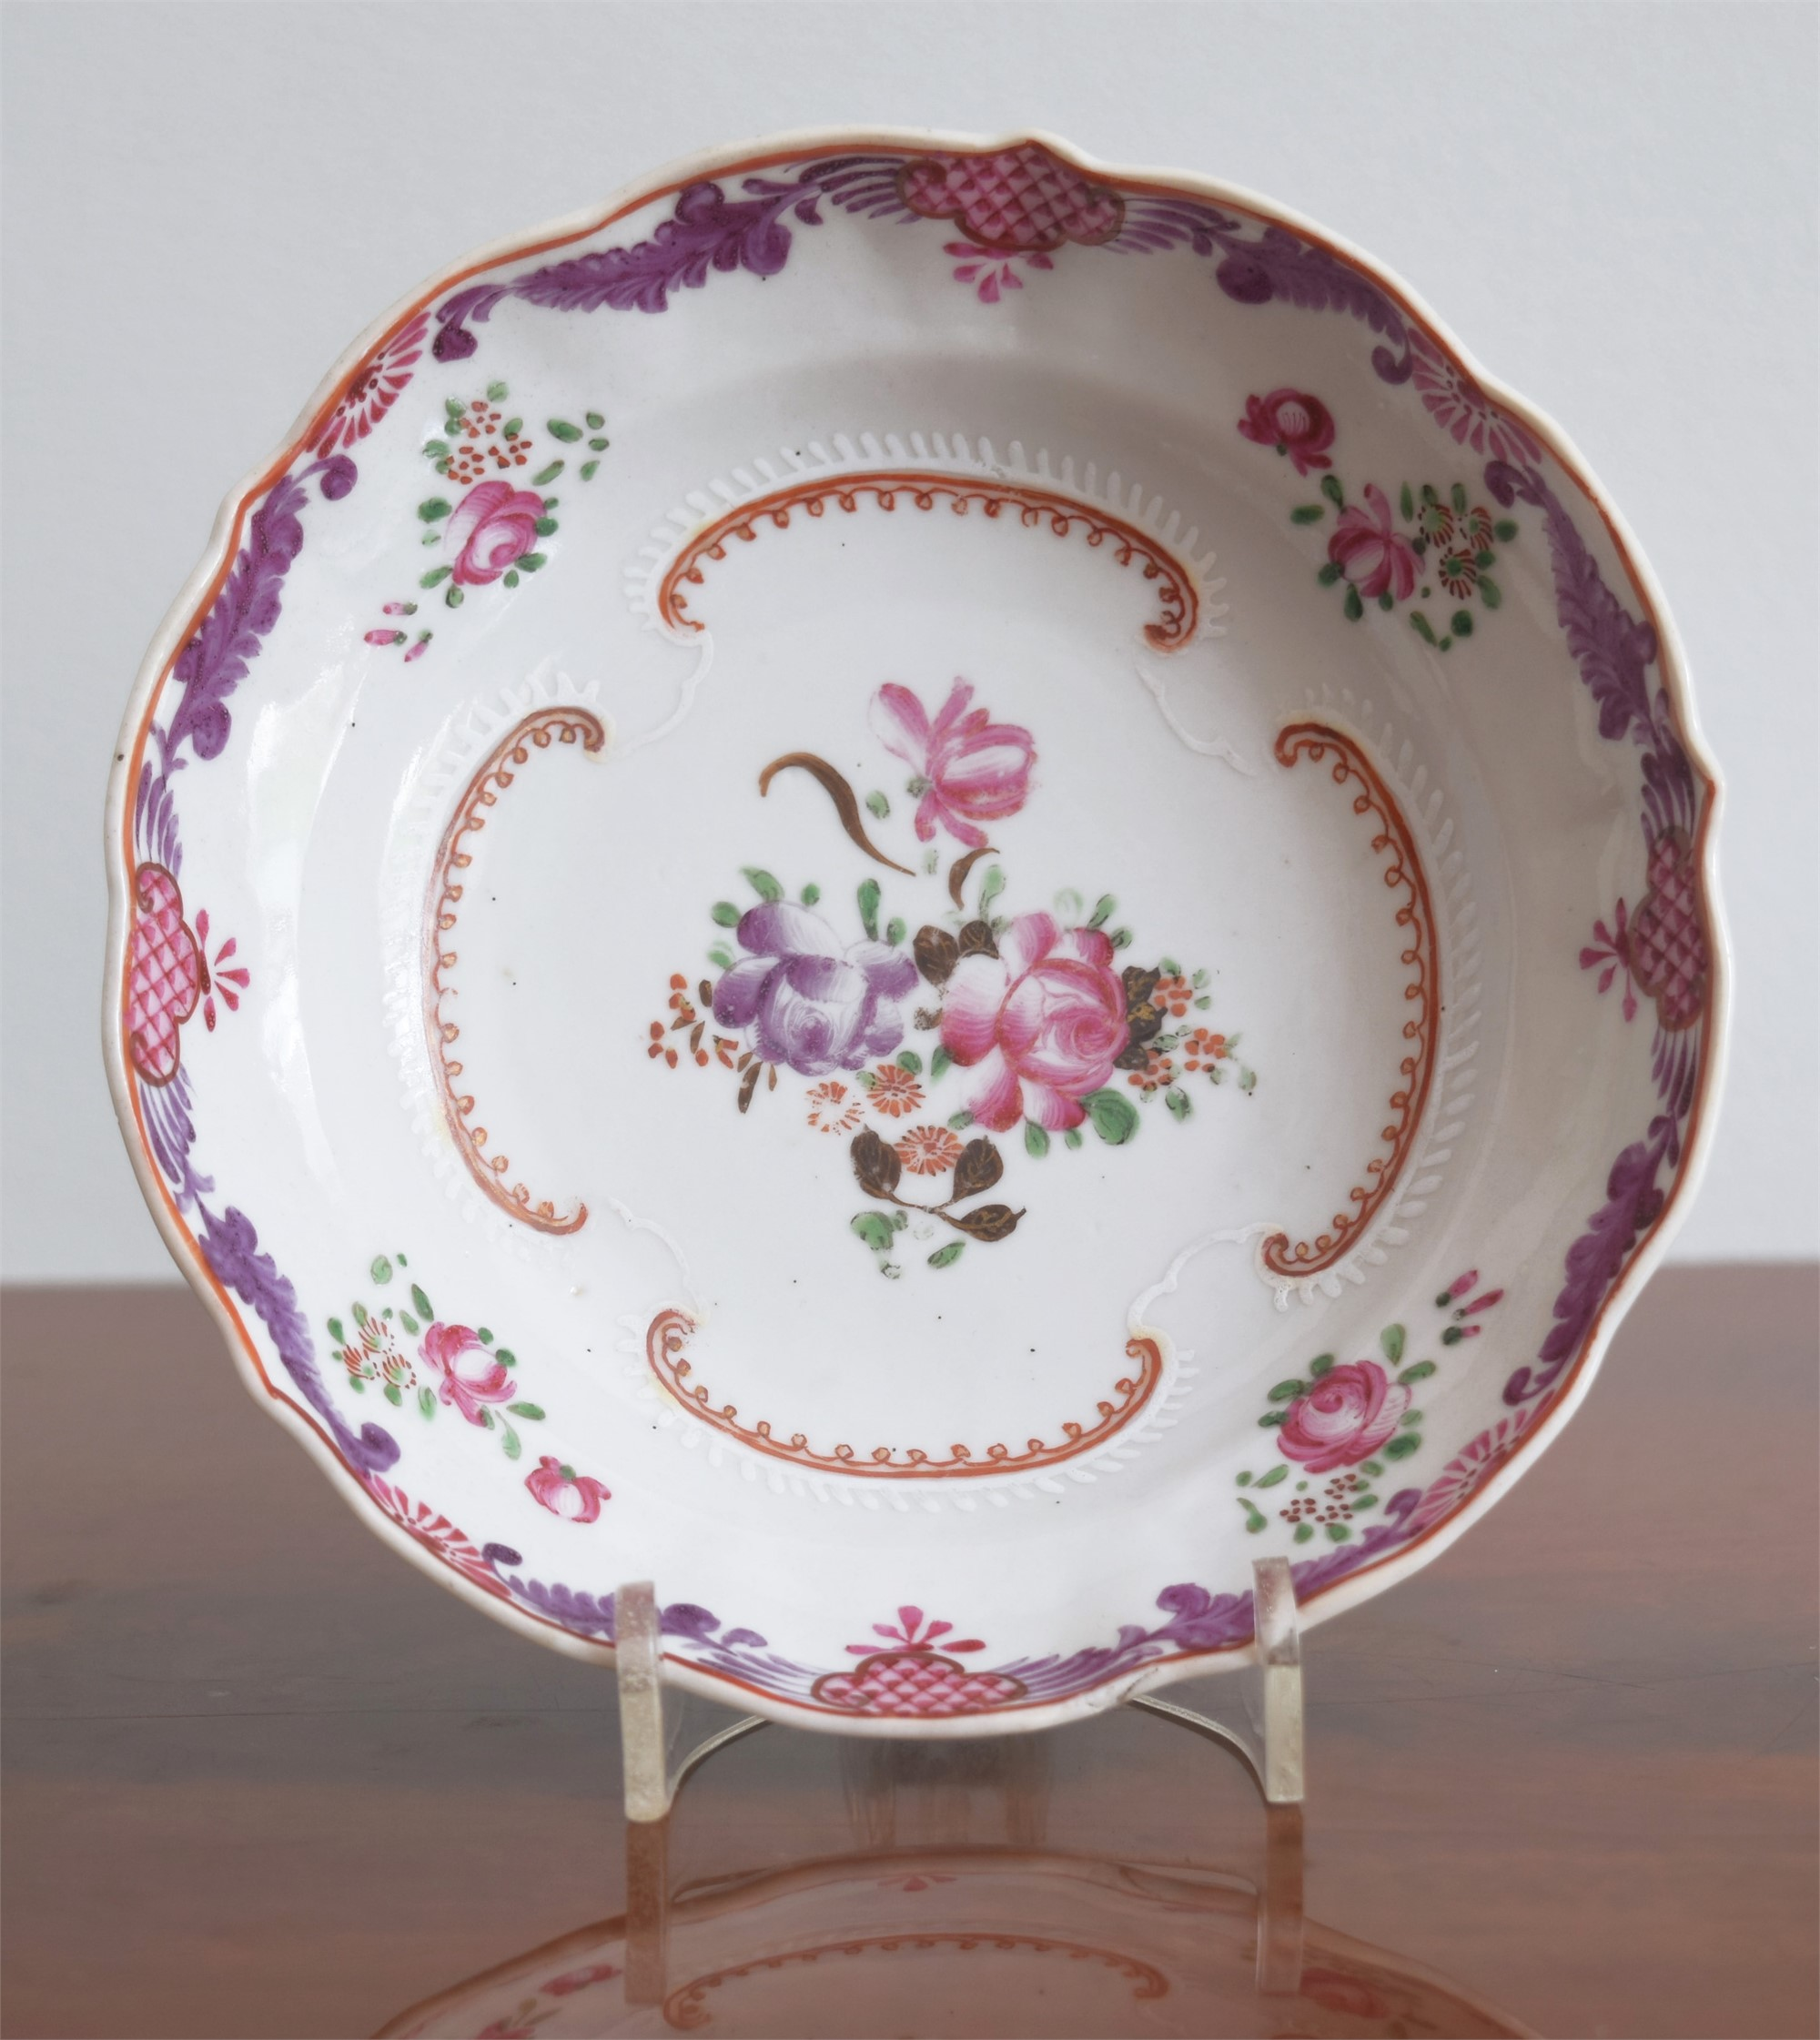 A FAMILLE ROSE MOLDED SAUCER WITH FLORAL DECORATION